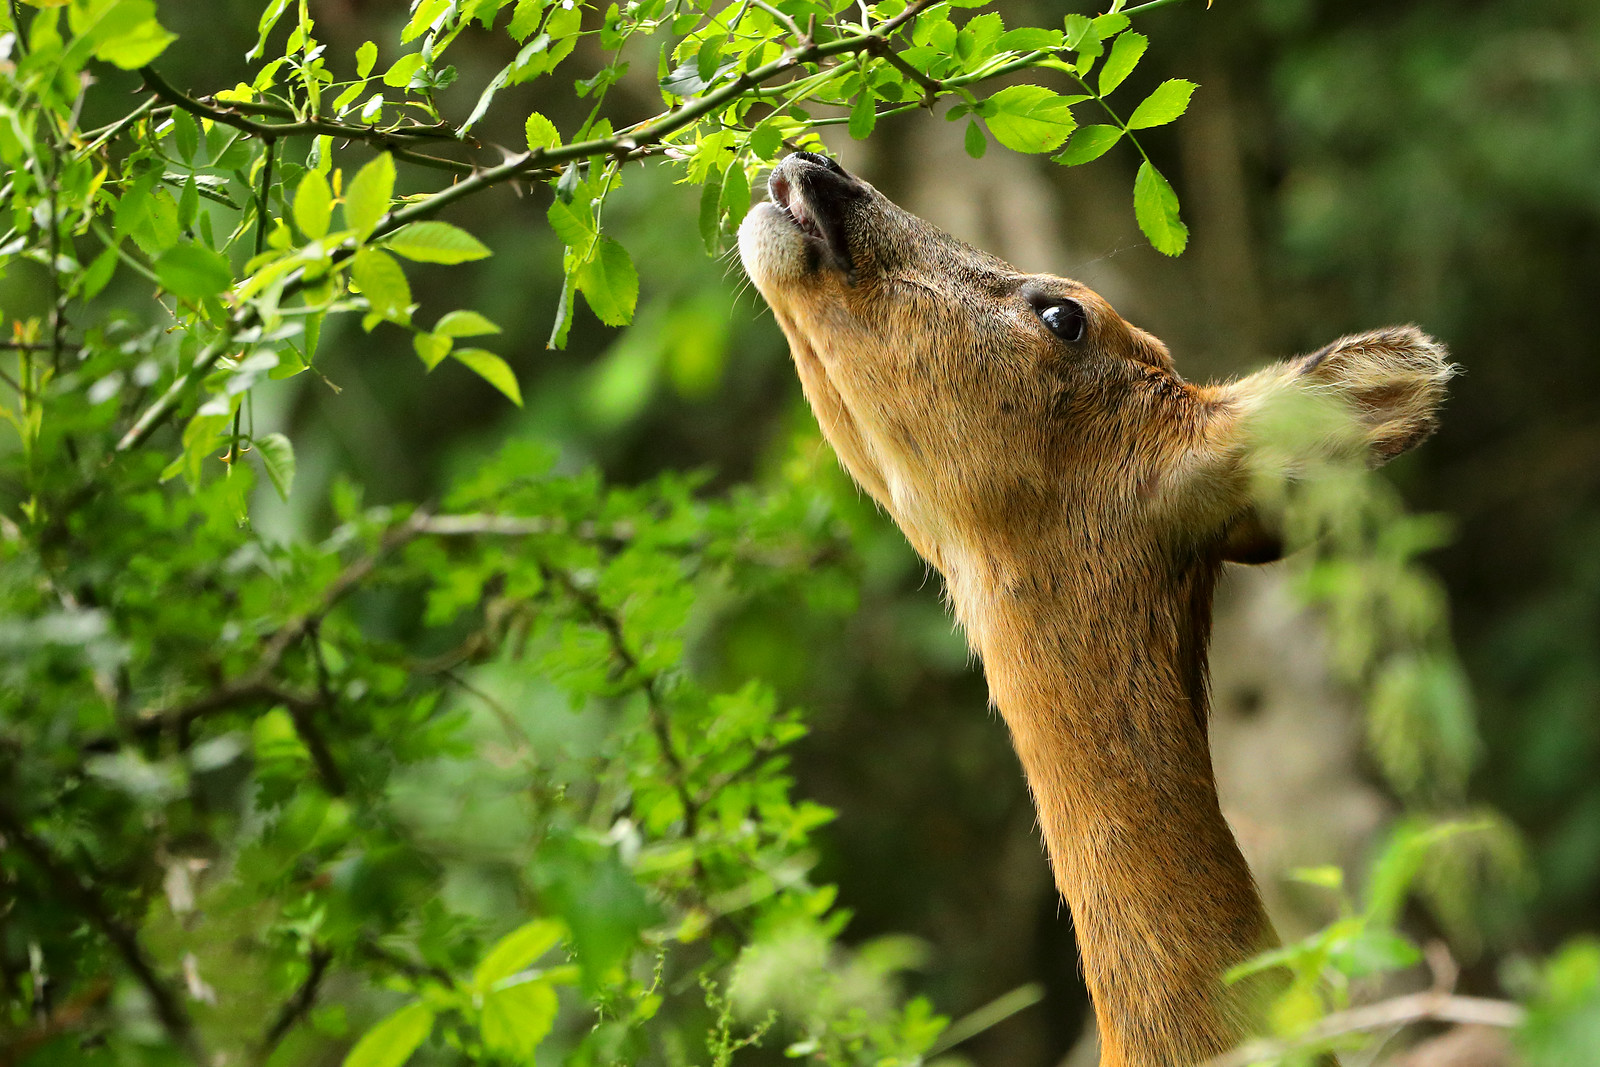 Roe deer reaching to eat leaves from a branch